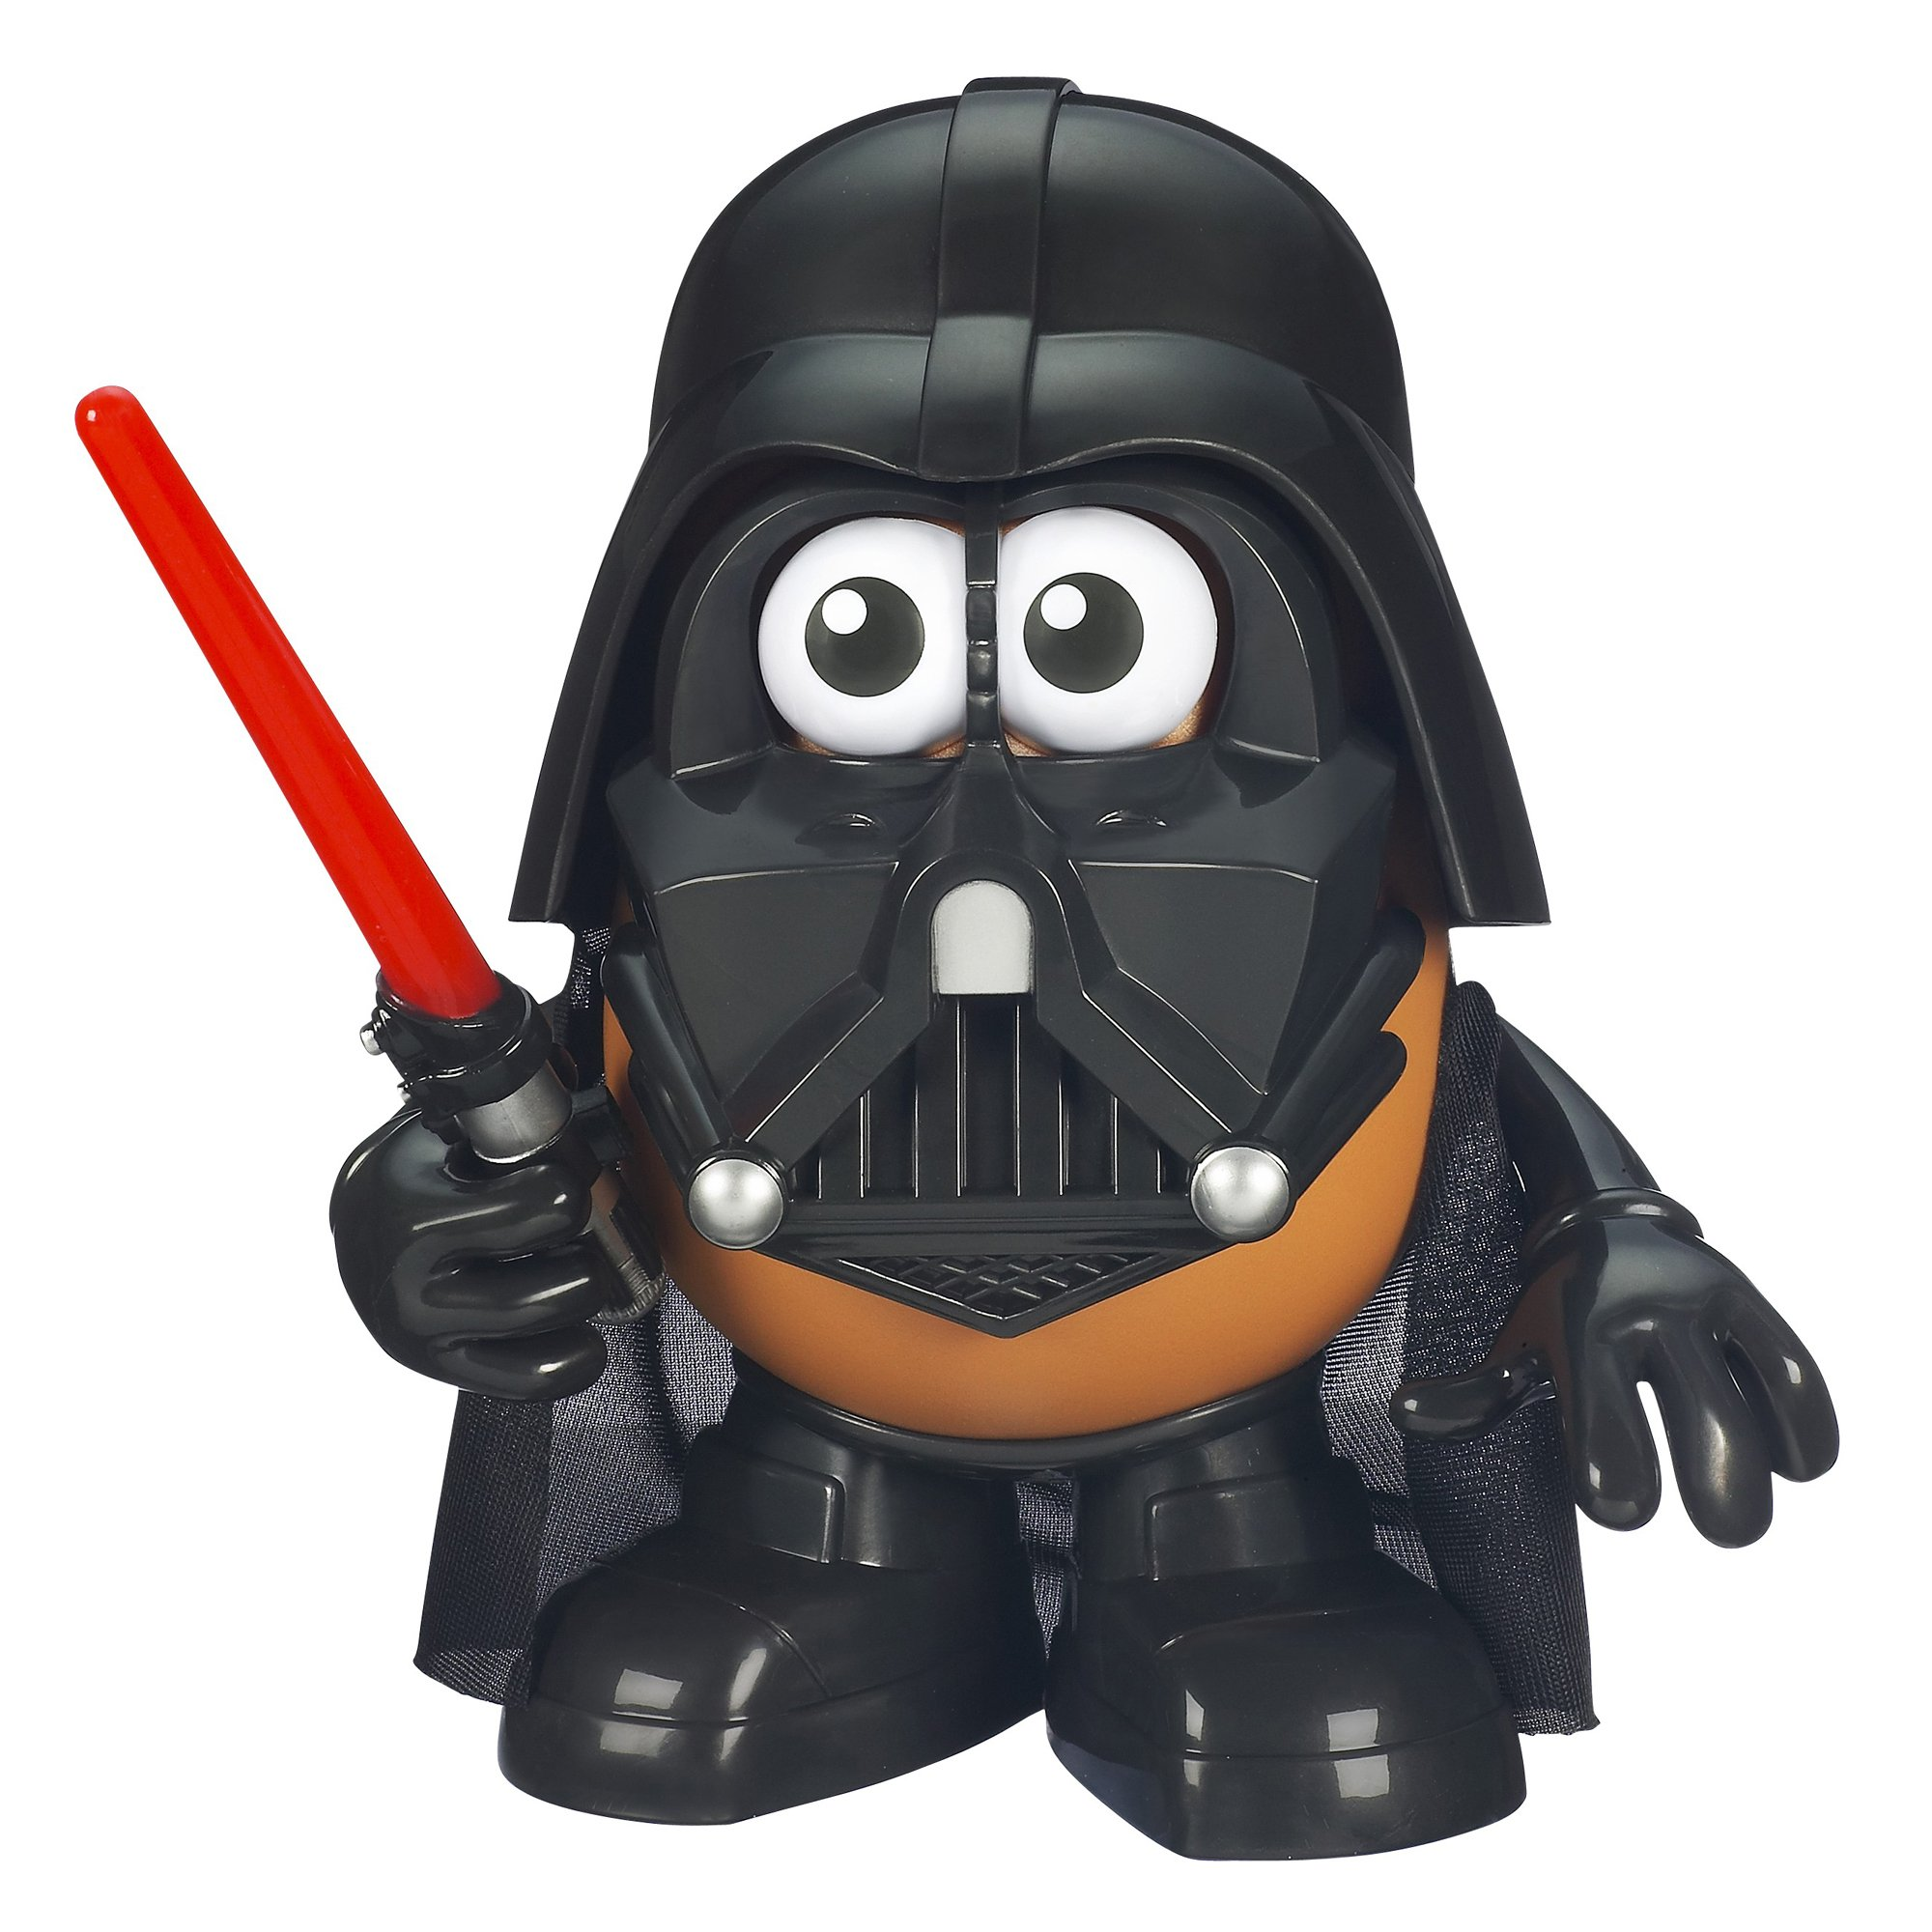 Star Wars Potato Head Toys